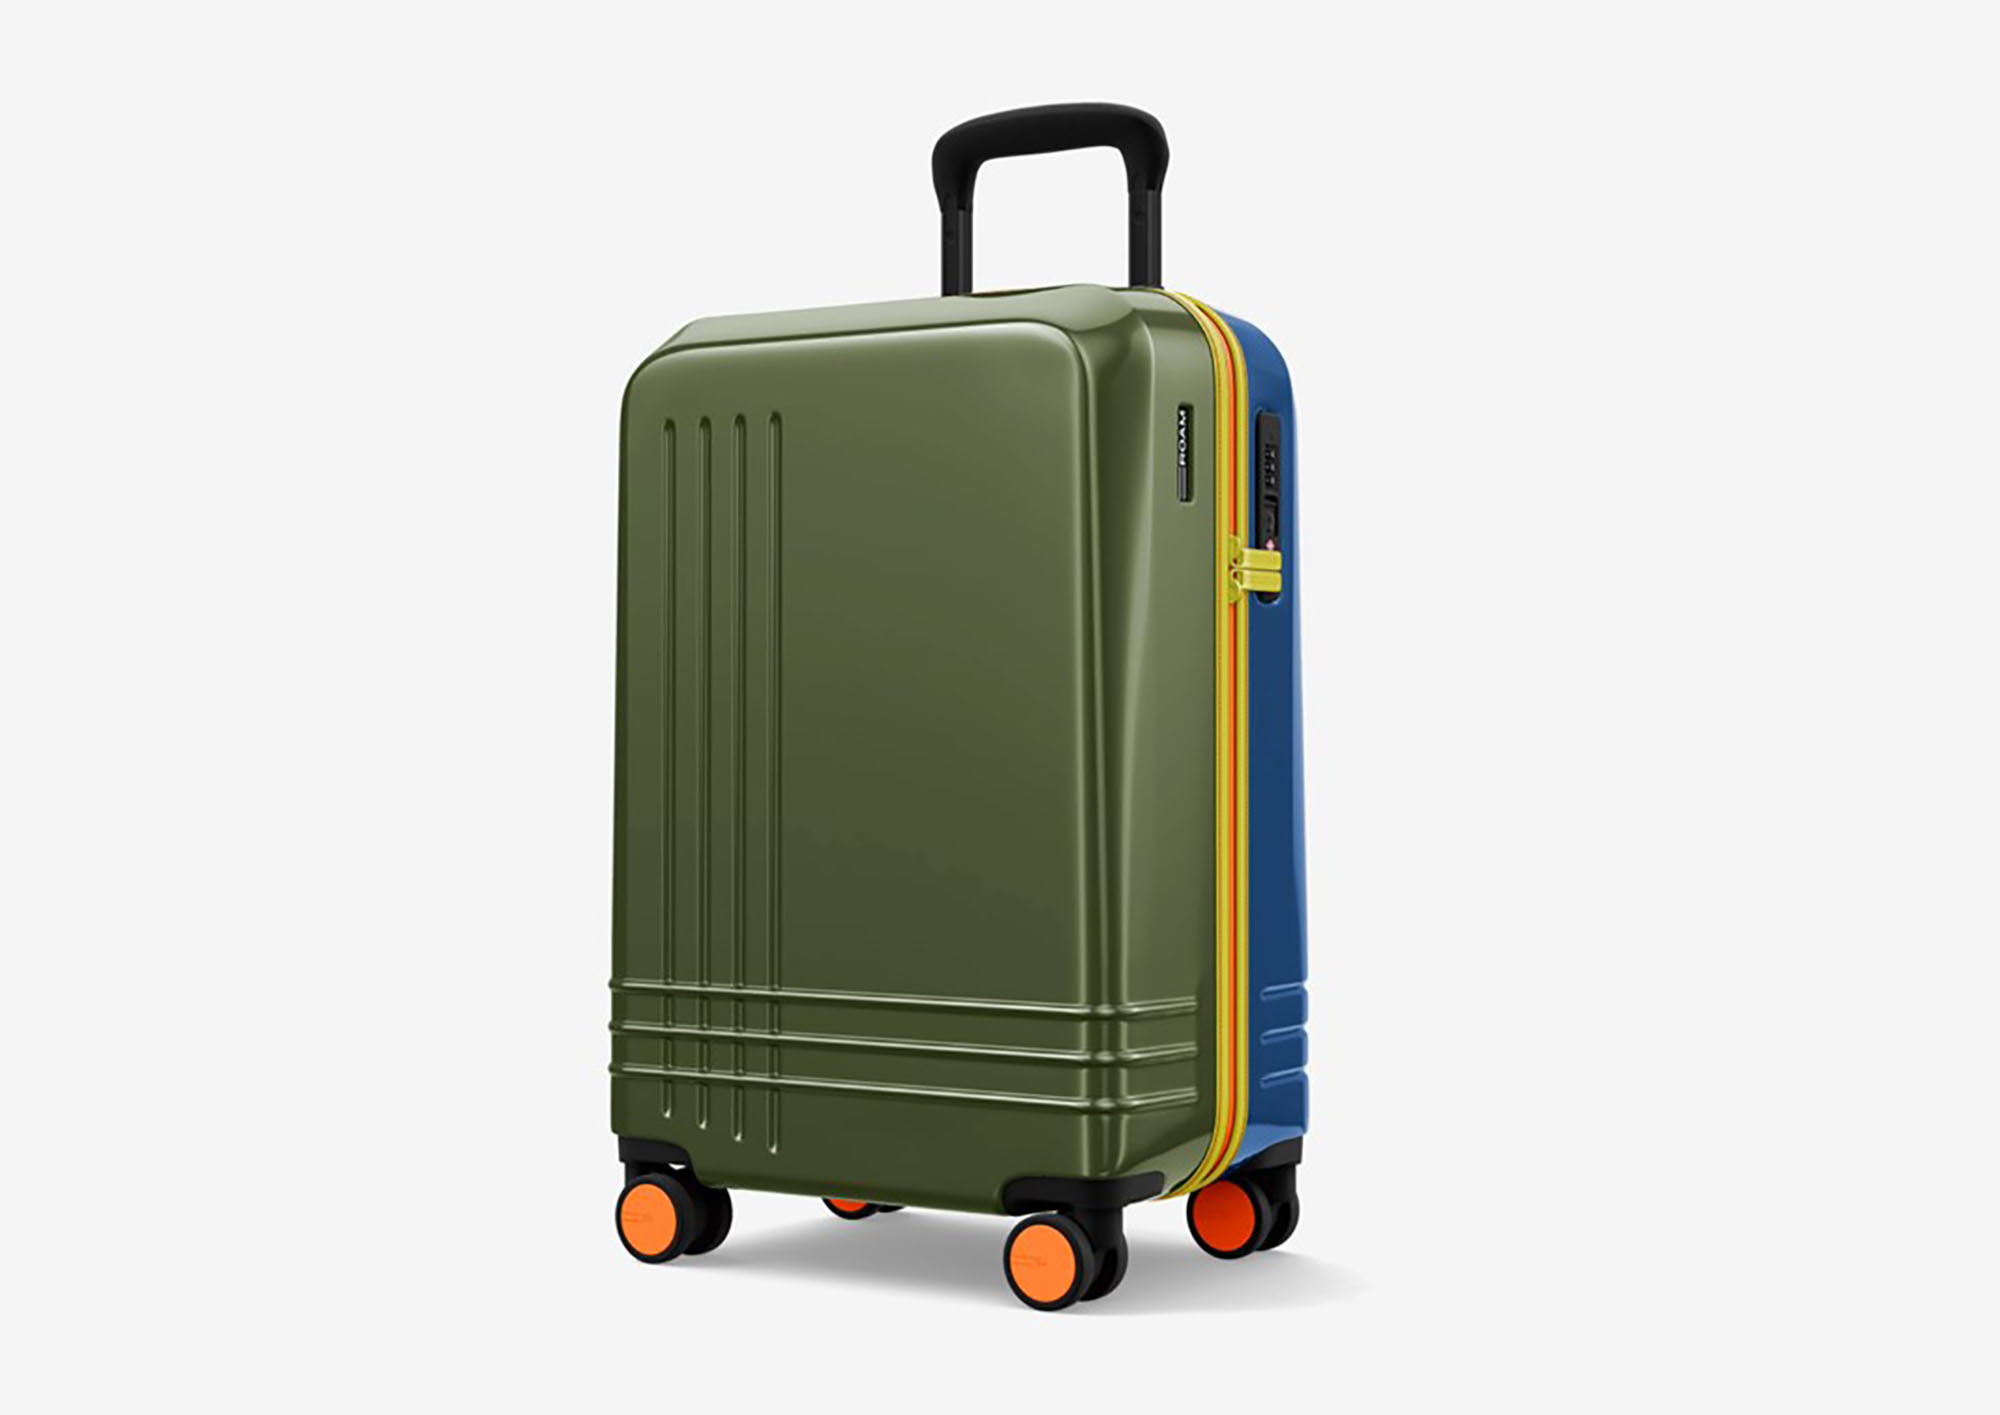 Roam Luggage The Jaunt